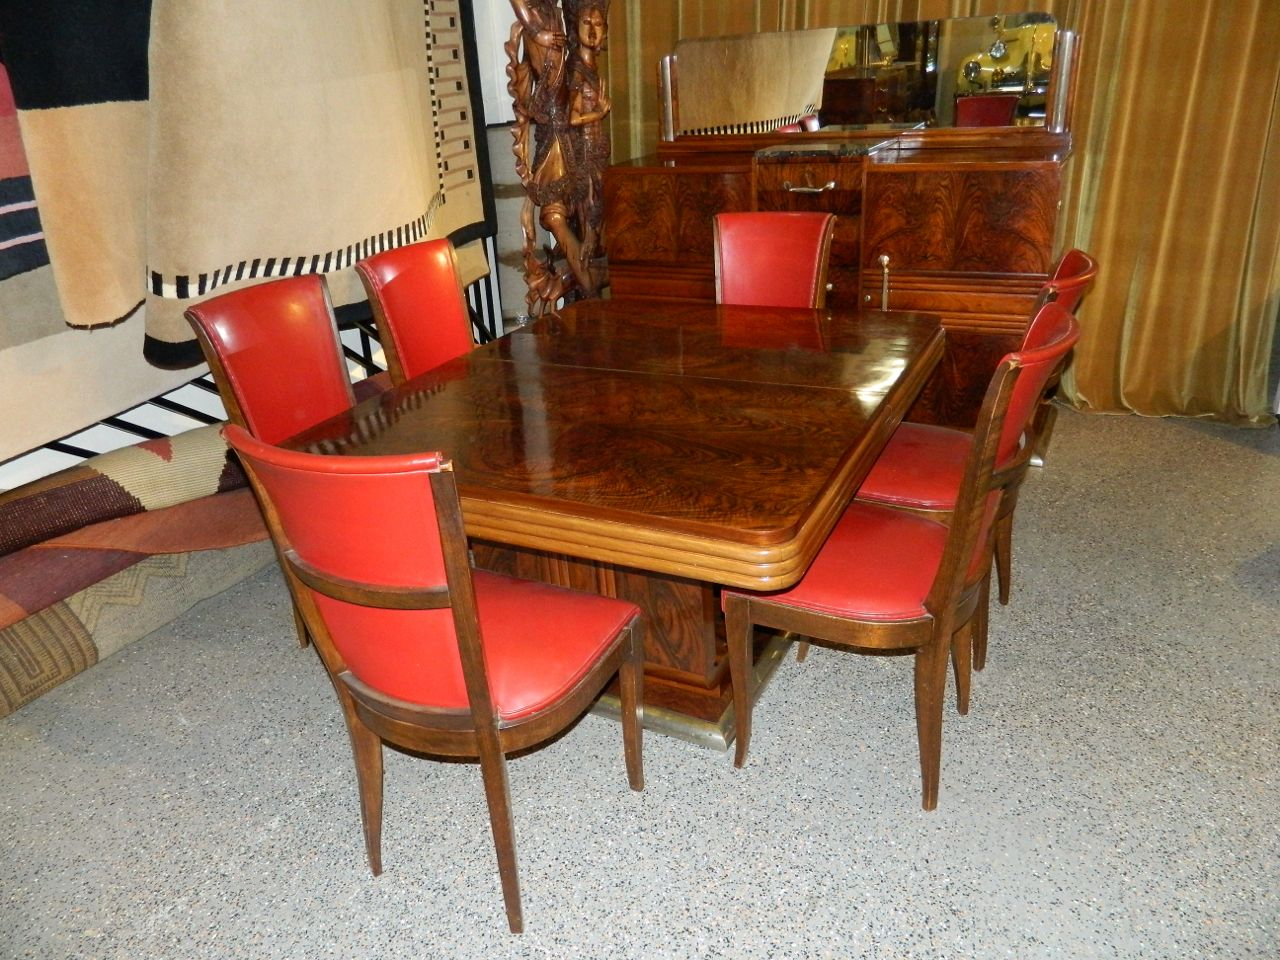 x original french art deco modernist dining table and chairs 1930 u0027s      rh   artdecocollection com